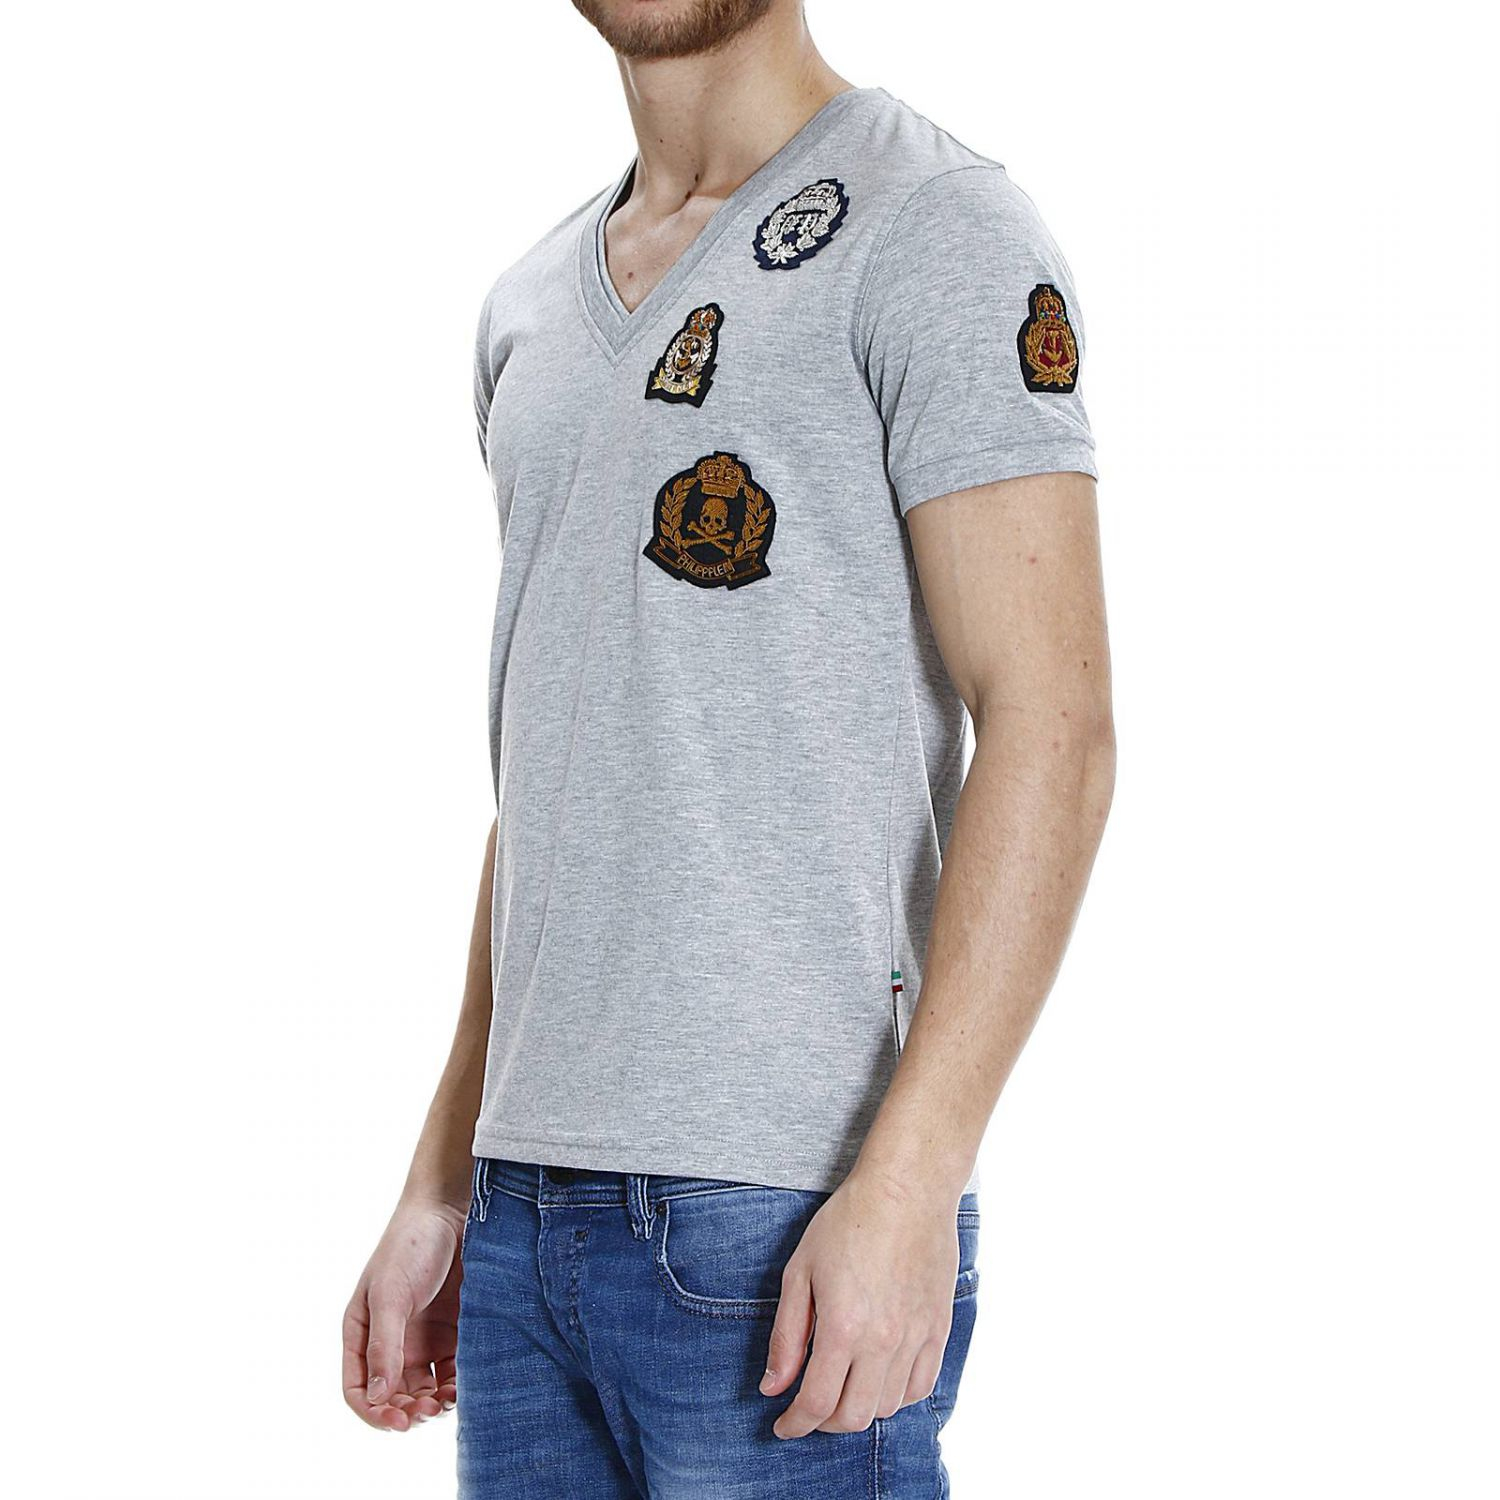 philipp plein t shirt in gray for men lyst. Black Bedroom Furniture Sets. Home Design Ideas